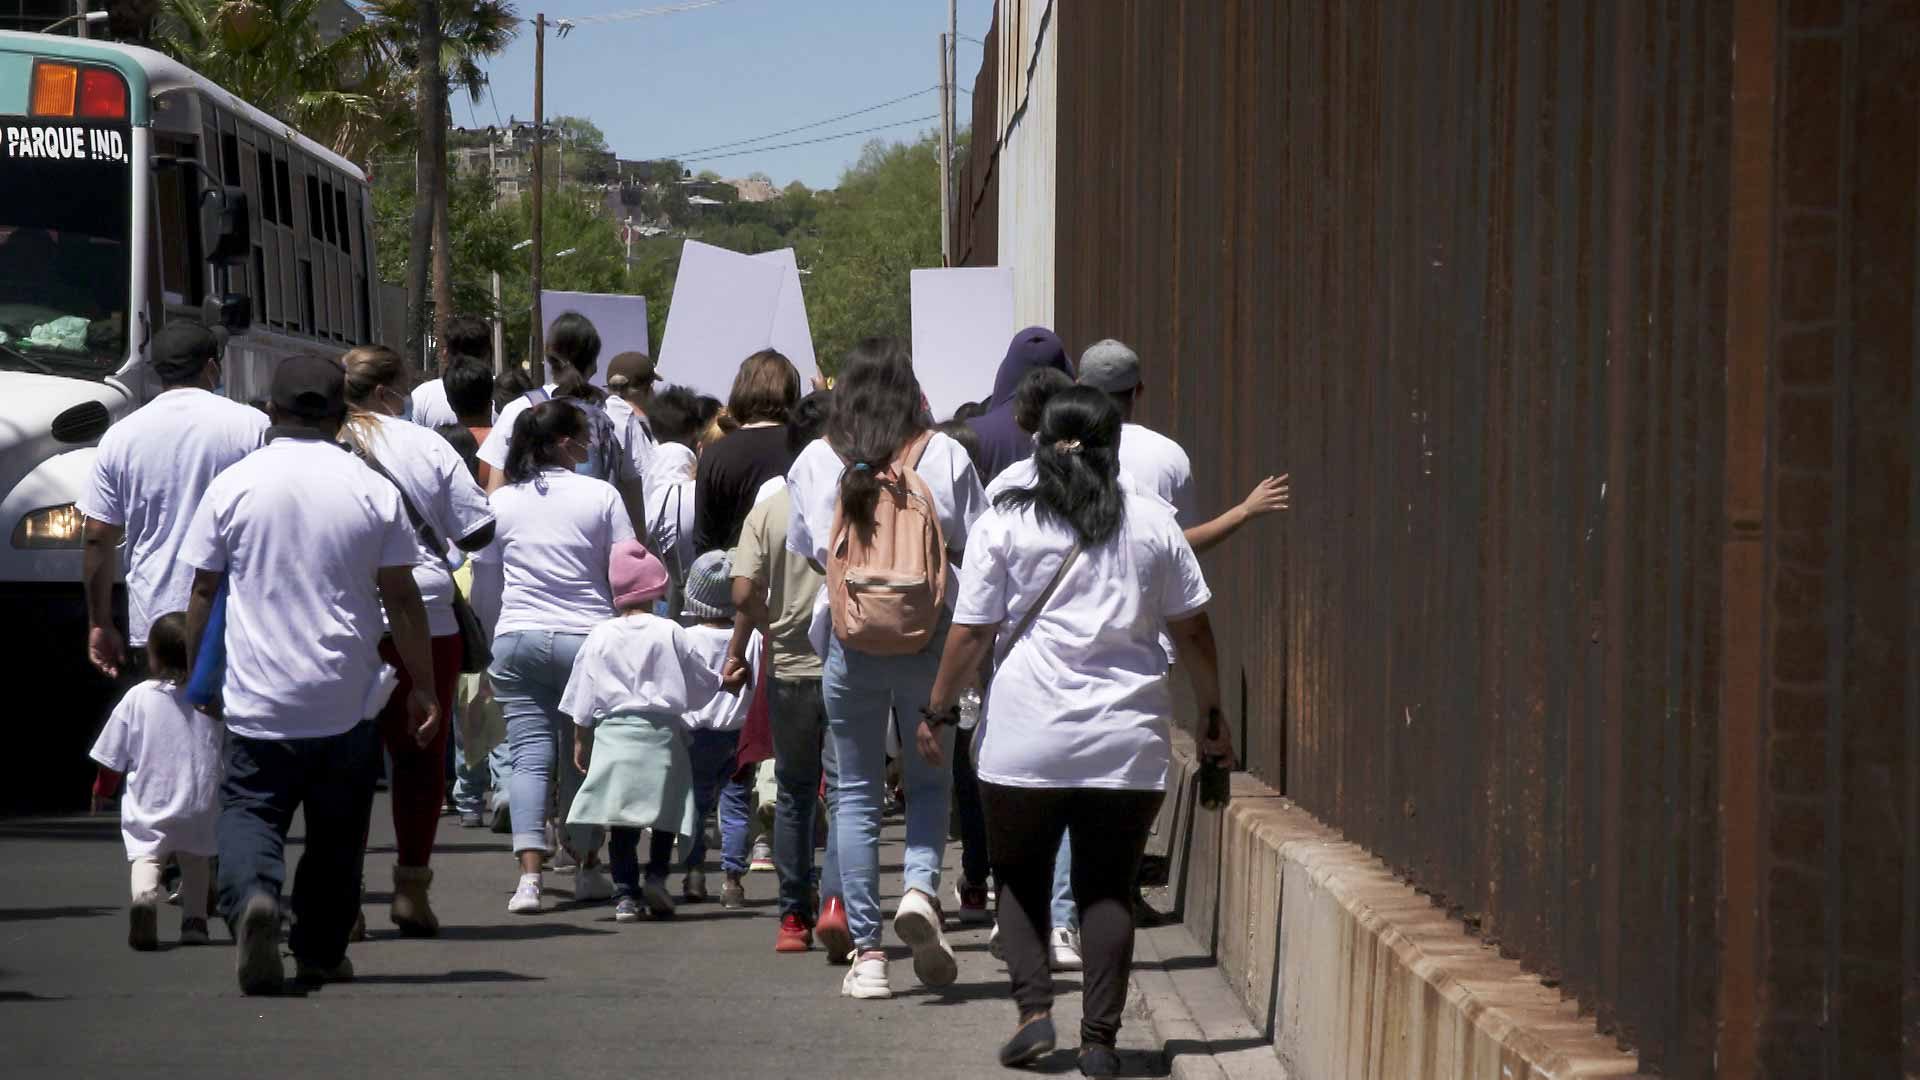 A group of demonstrators walk along the border wall in a march led by migrants and asylum seekers in Nogales, Sonora on April 30, 2021. The event was meant to urge President Biden to act on immigration reform.